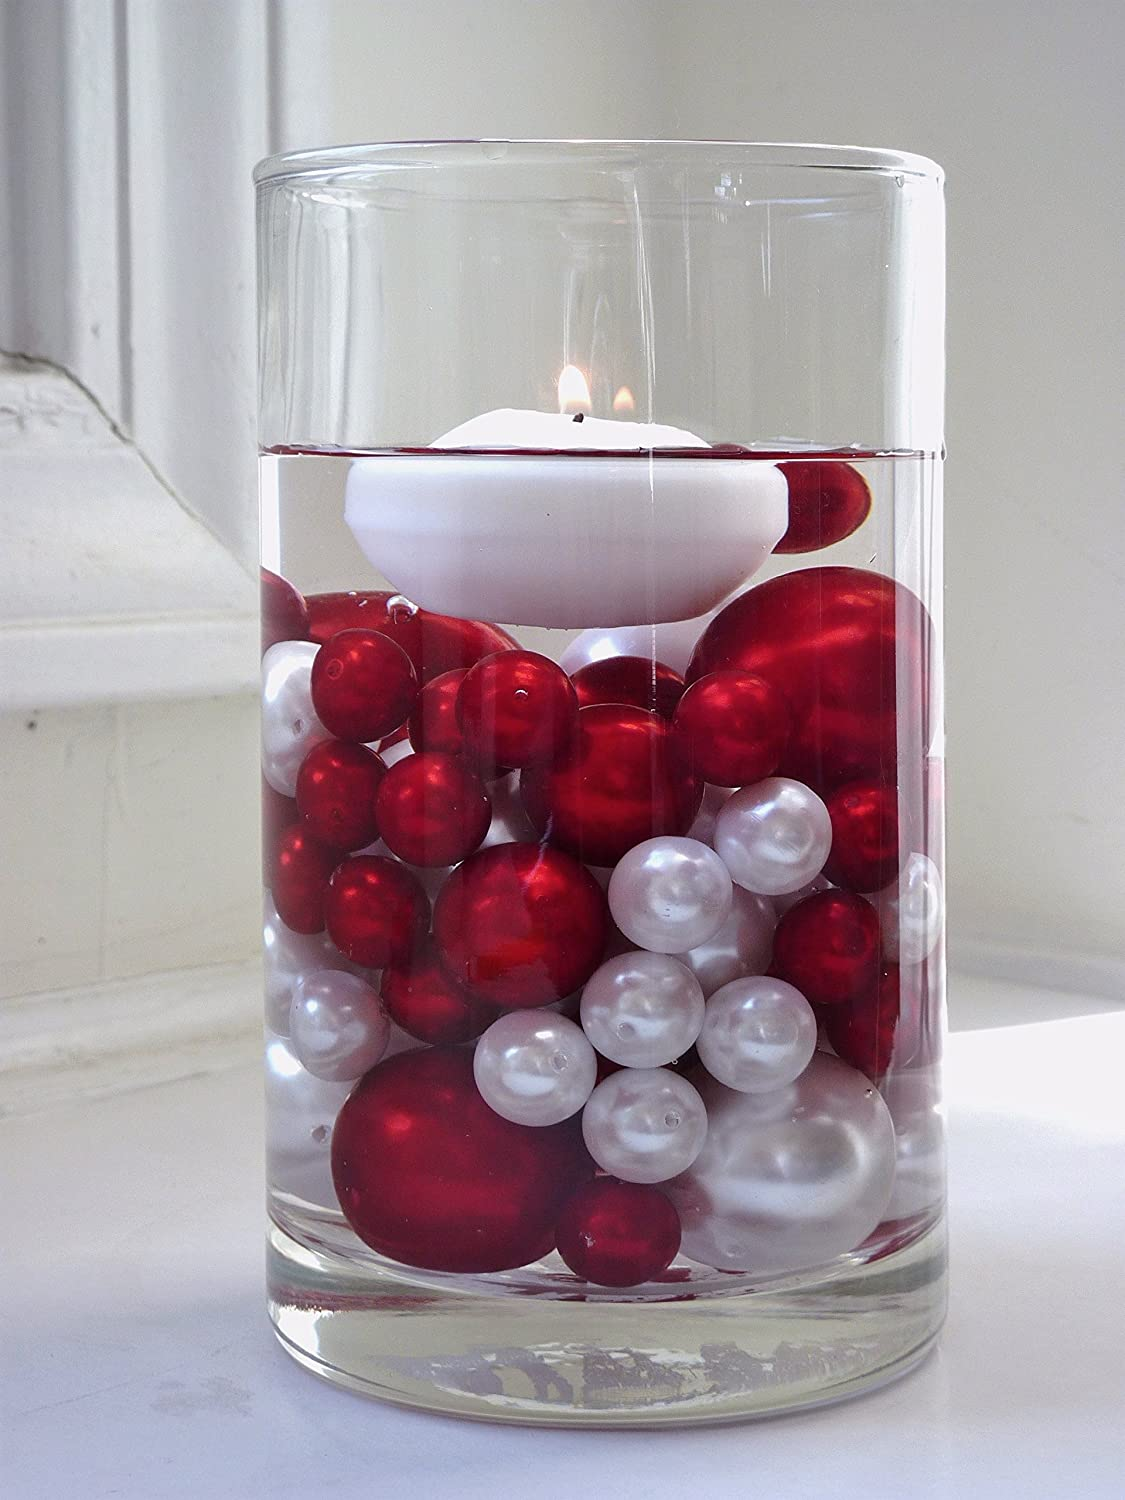 Amazon 2 packs jumbo assorted sizes all red pearls vase amazon 2 packs jumbo assorted sizes all red pearls vase fillers value pack for centerpieces to float the pearls order the transparent water gels reviewsmspy